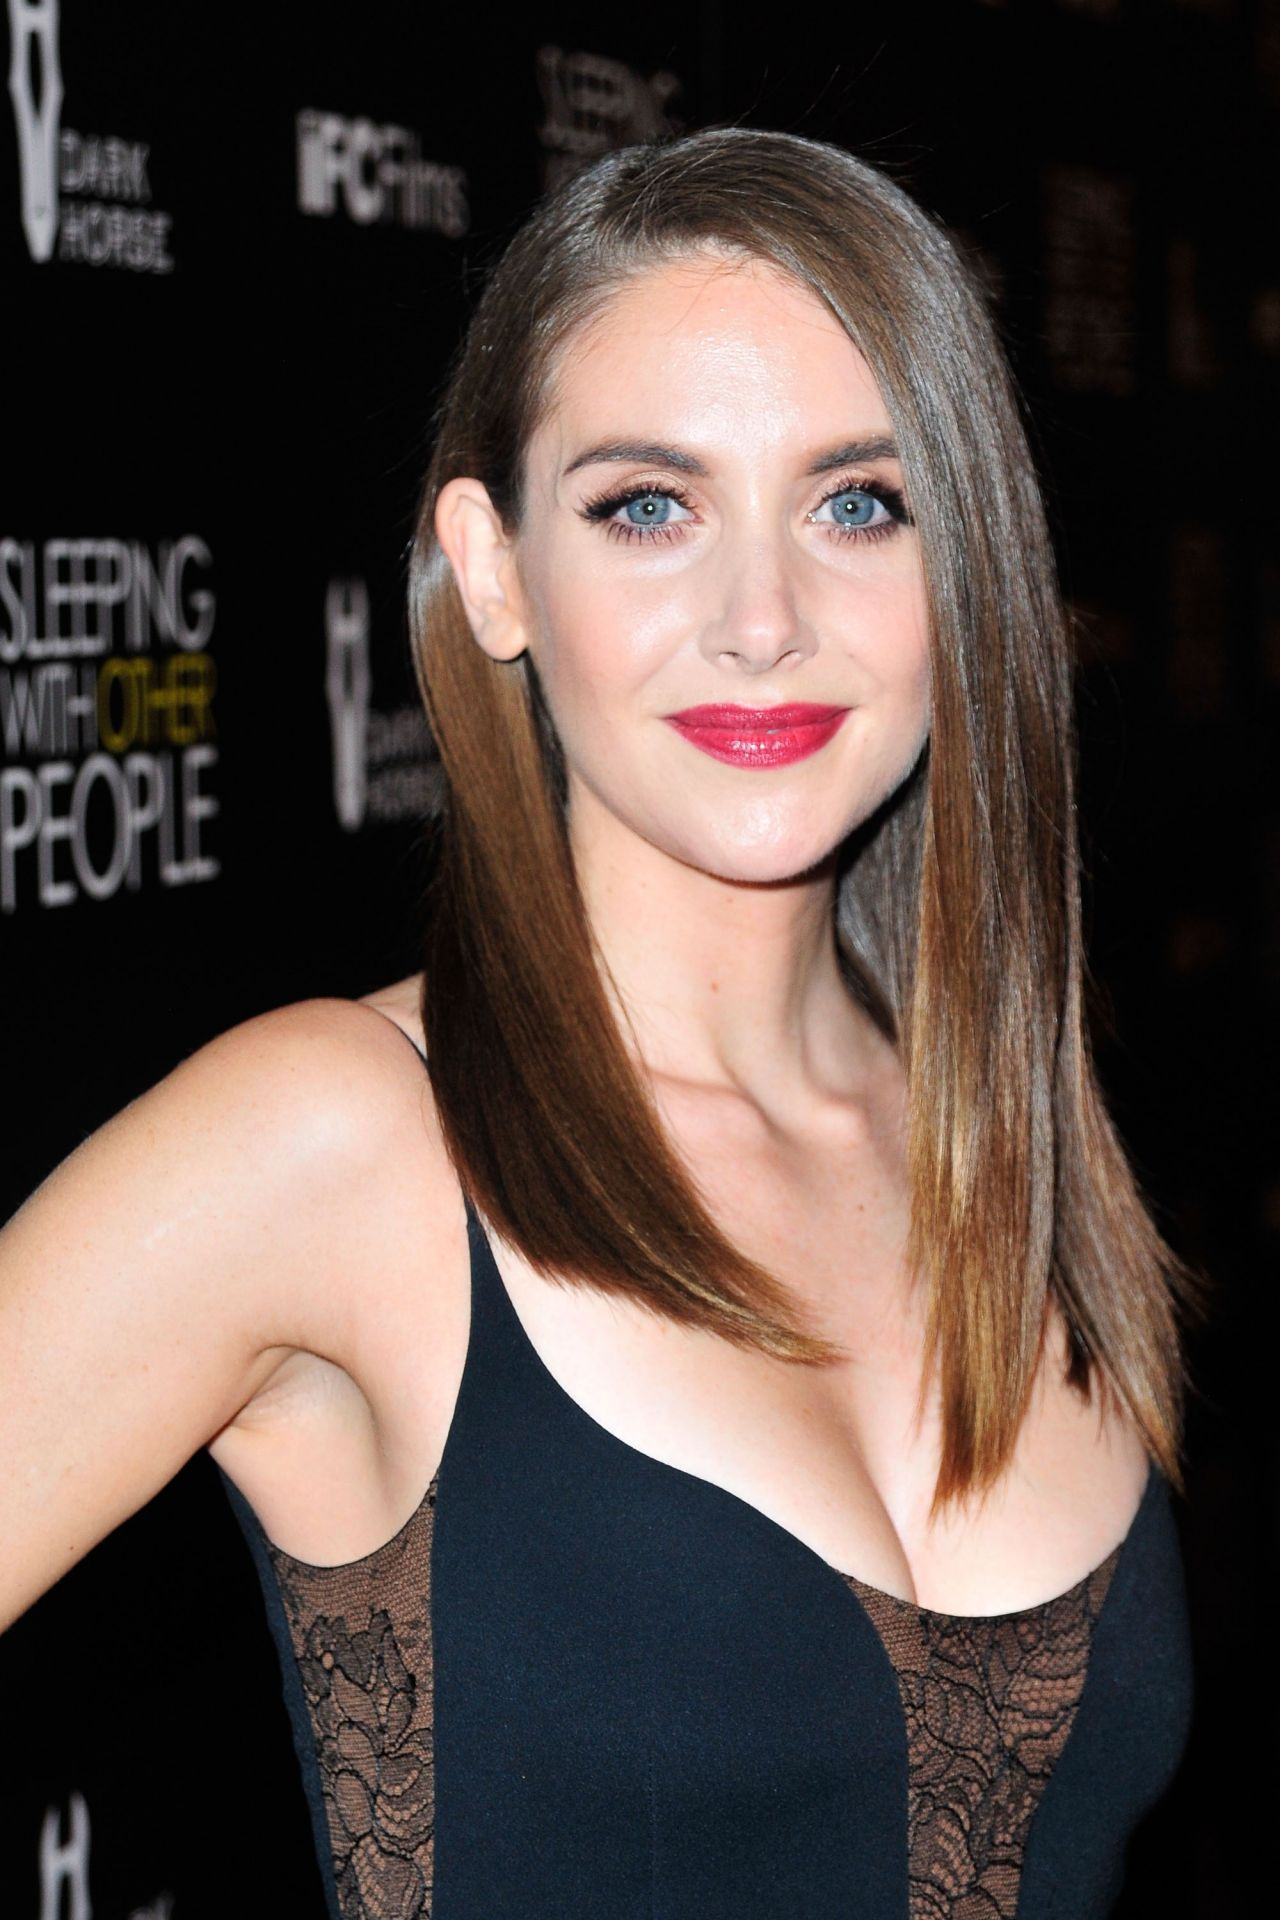 Alison Brie Sleeping With Other People Premiere In